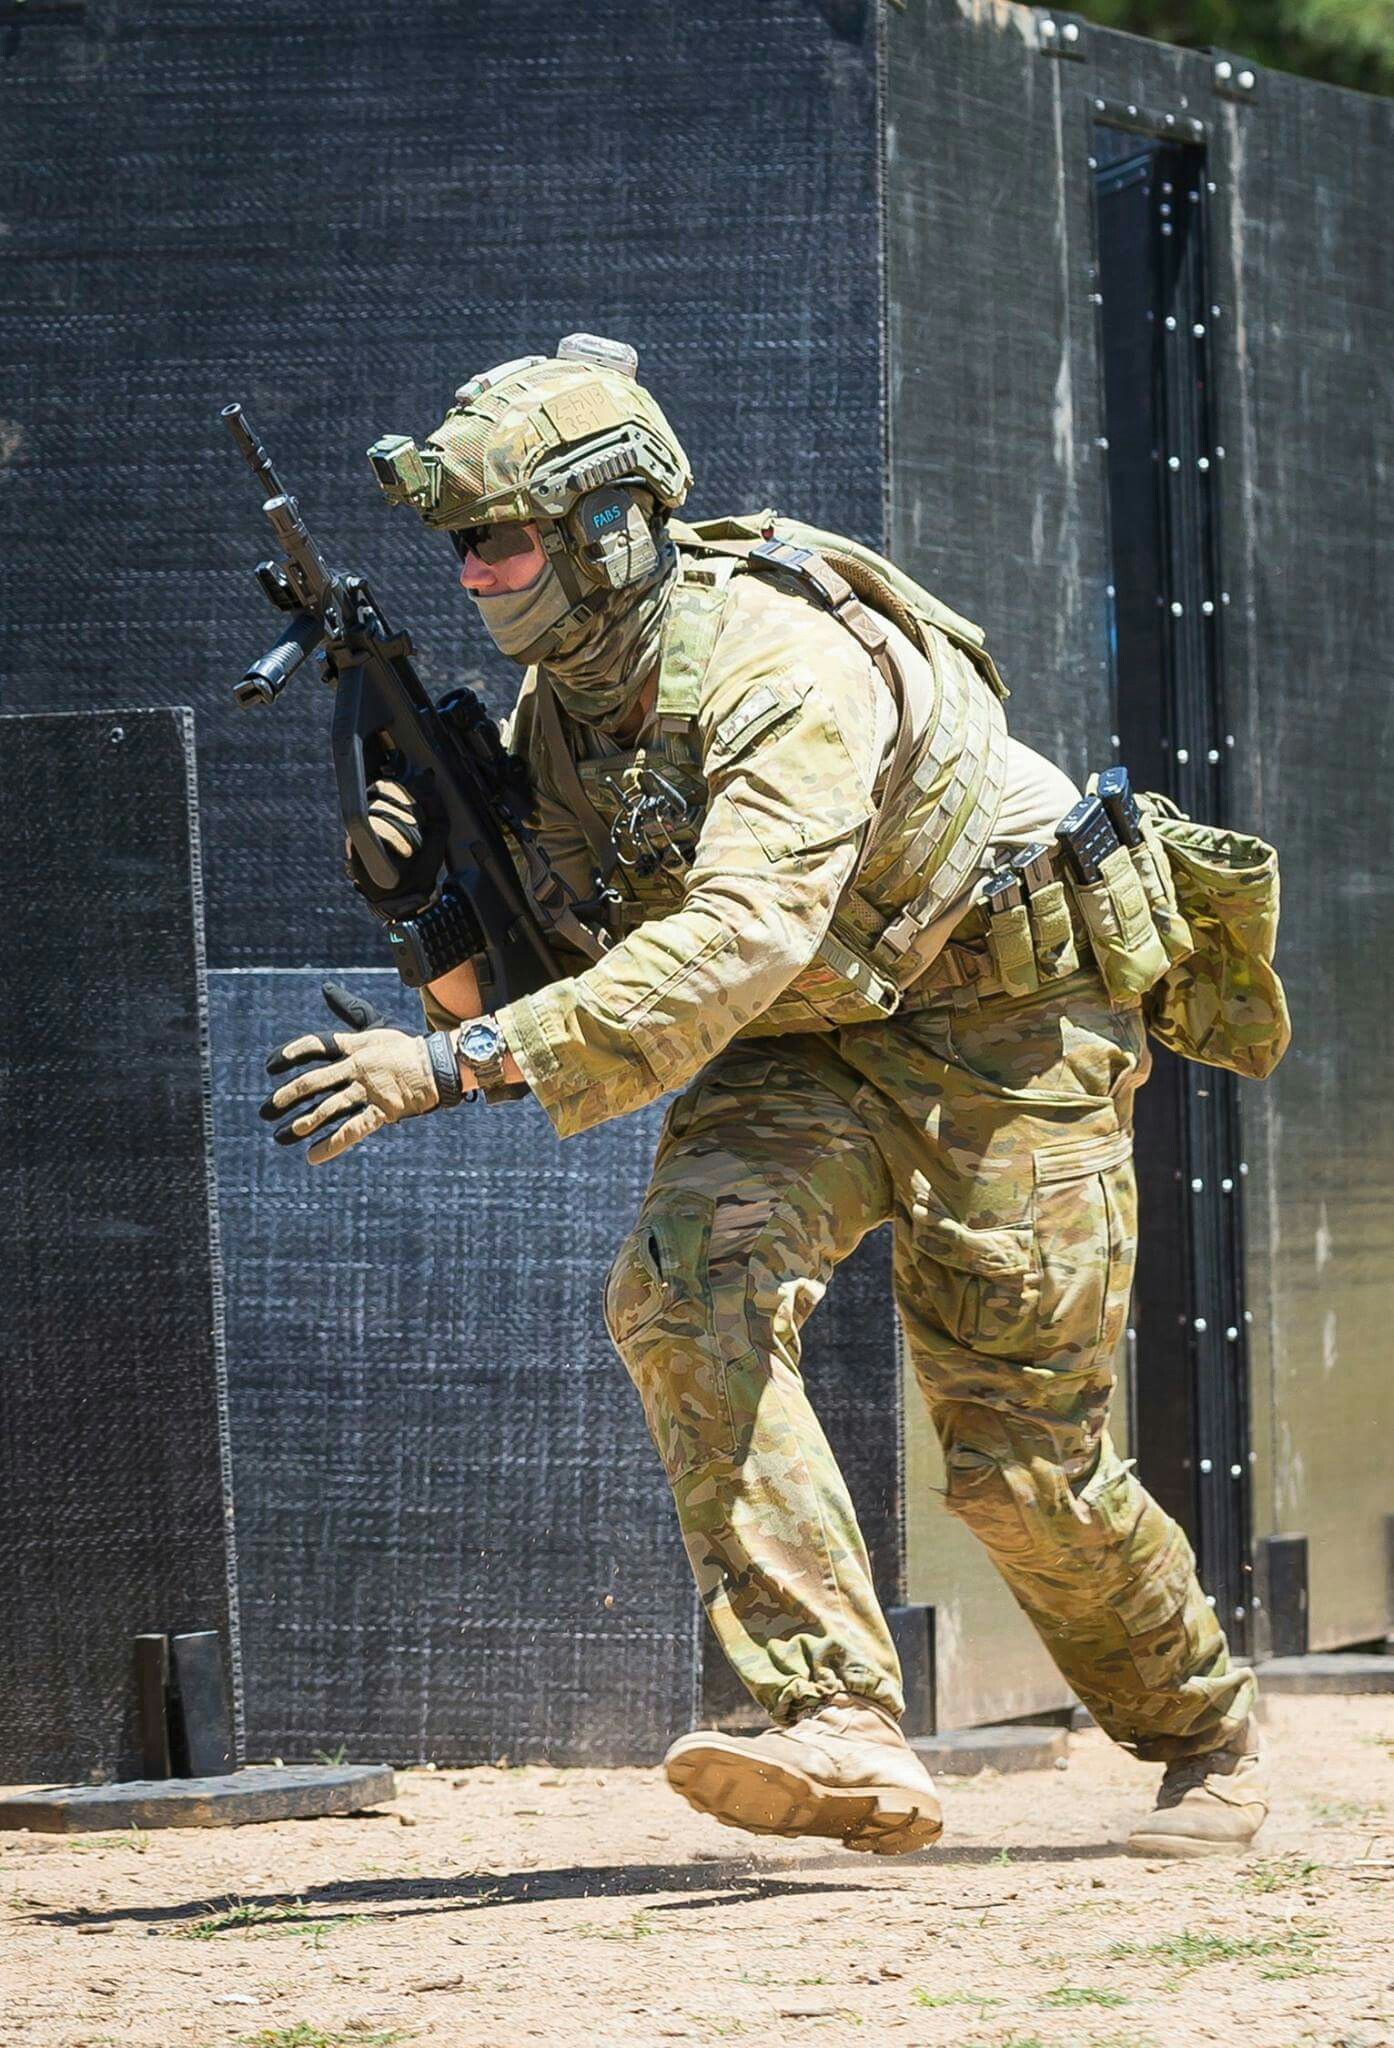 an-Australian-infantry-soldier-from-Brigade-engaged-in-live-fire-training-in-an-urban-environment-wallpaper-wp5004499